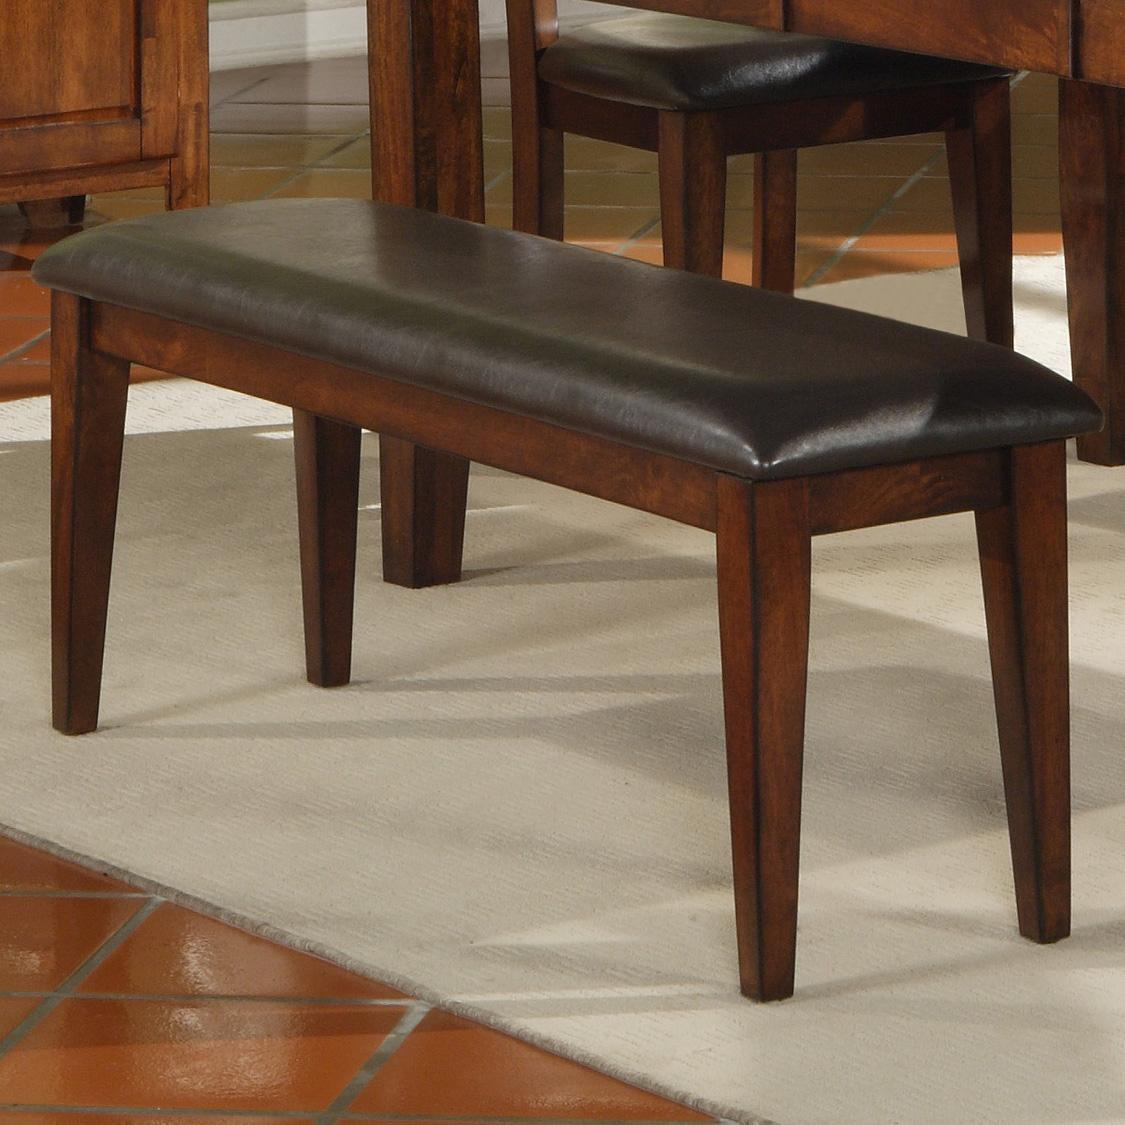 Melbourne Melbourne Dining Bench by Holland House at Morris Home